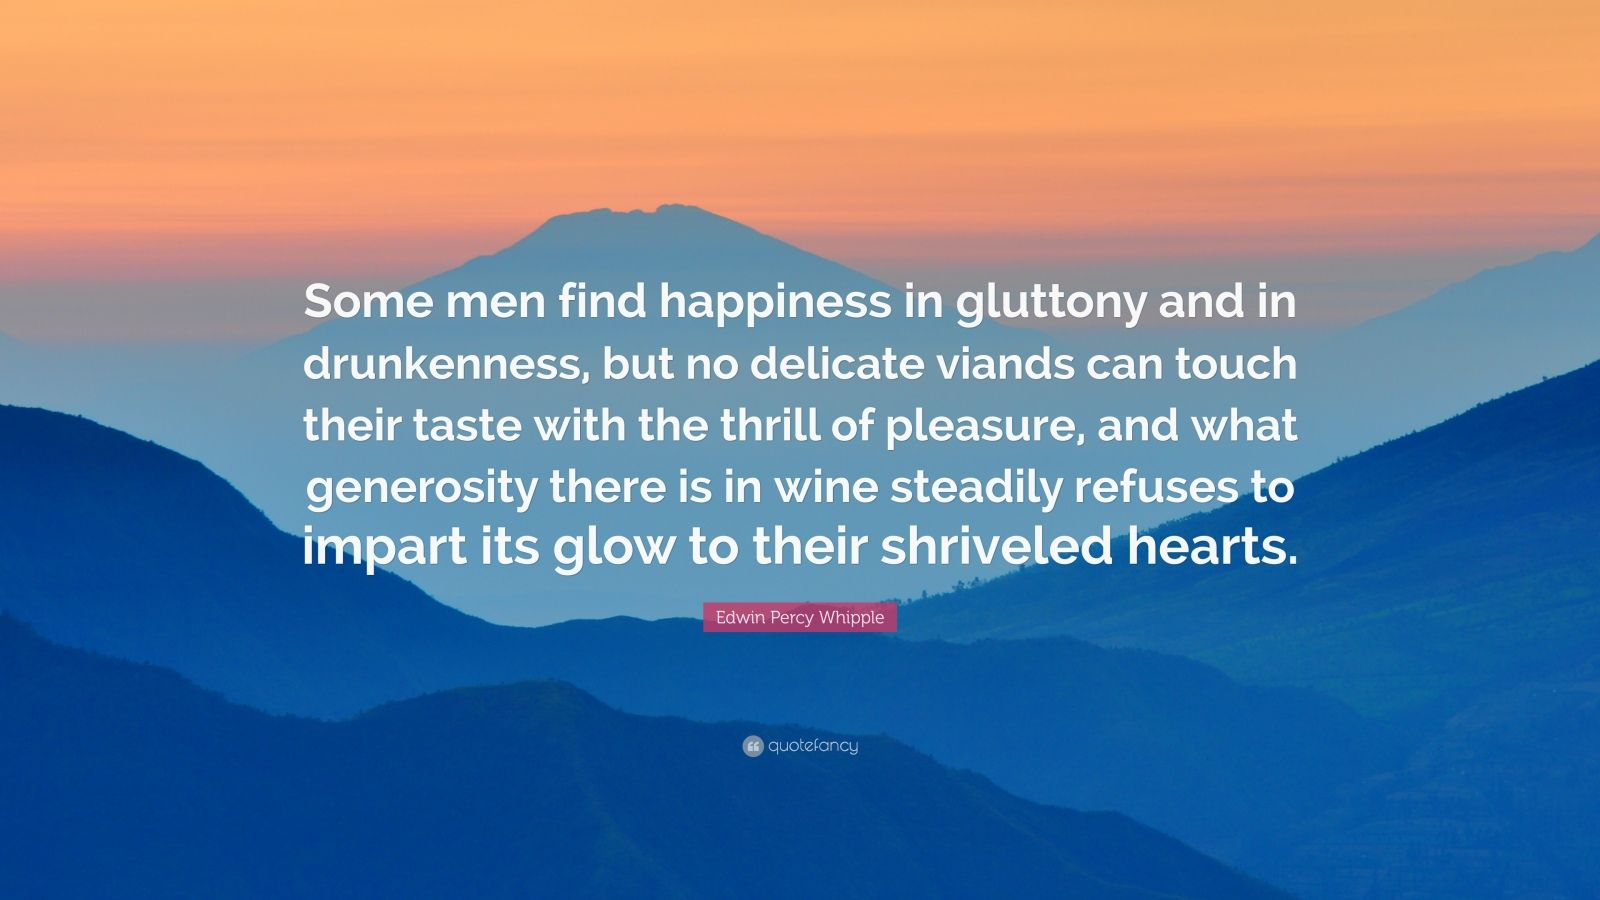 """Edwin Percy Whipple Quote: """"Some men find happiness in gluttony and in drunkenness, but no delicate viands can touch their taste with the thrill of pleasure, and what generosity there is in wine steadily refuses to impart its glow to their shriveled hearts."""""""